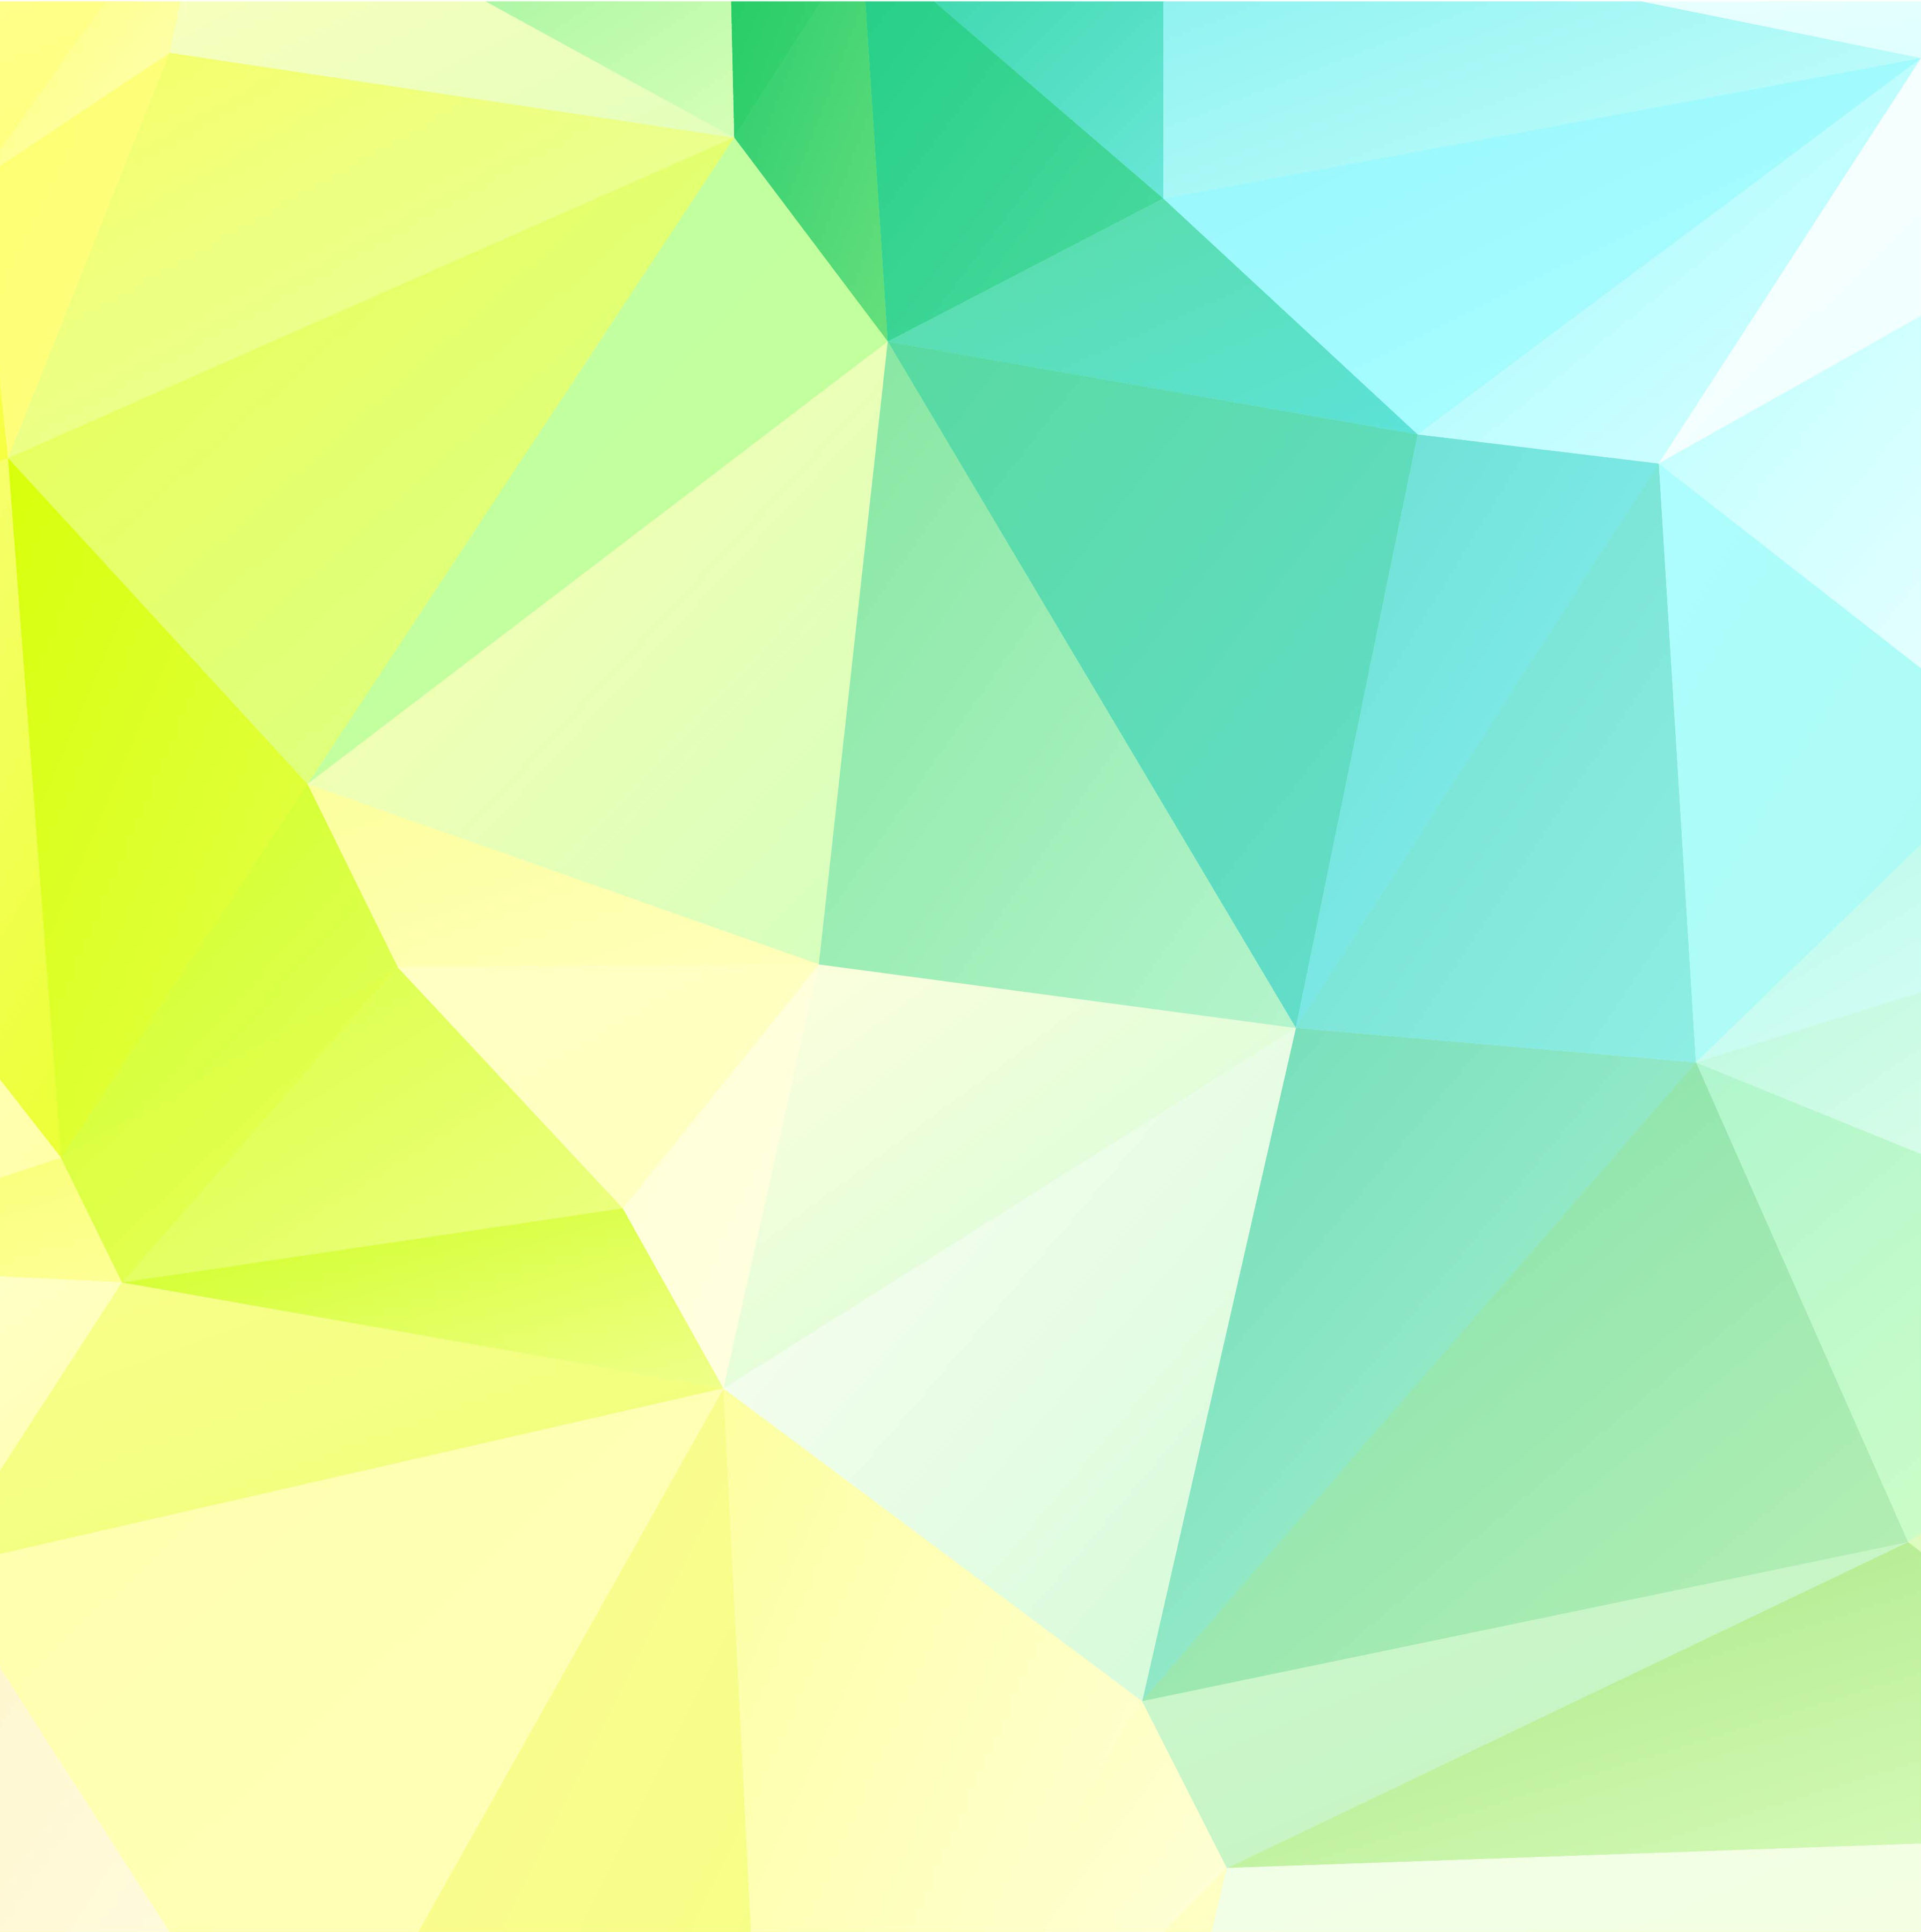 Free Colorful Geometric Wallpaper: Abstract Geometric Colorful Polygon Background